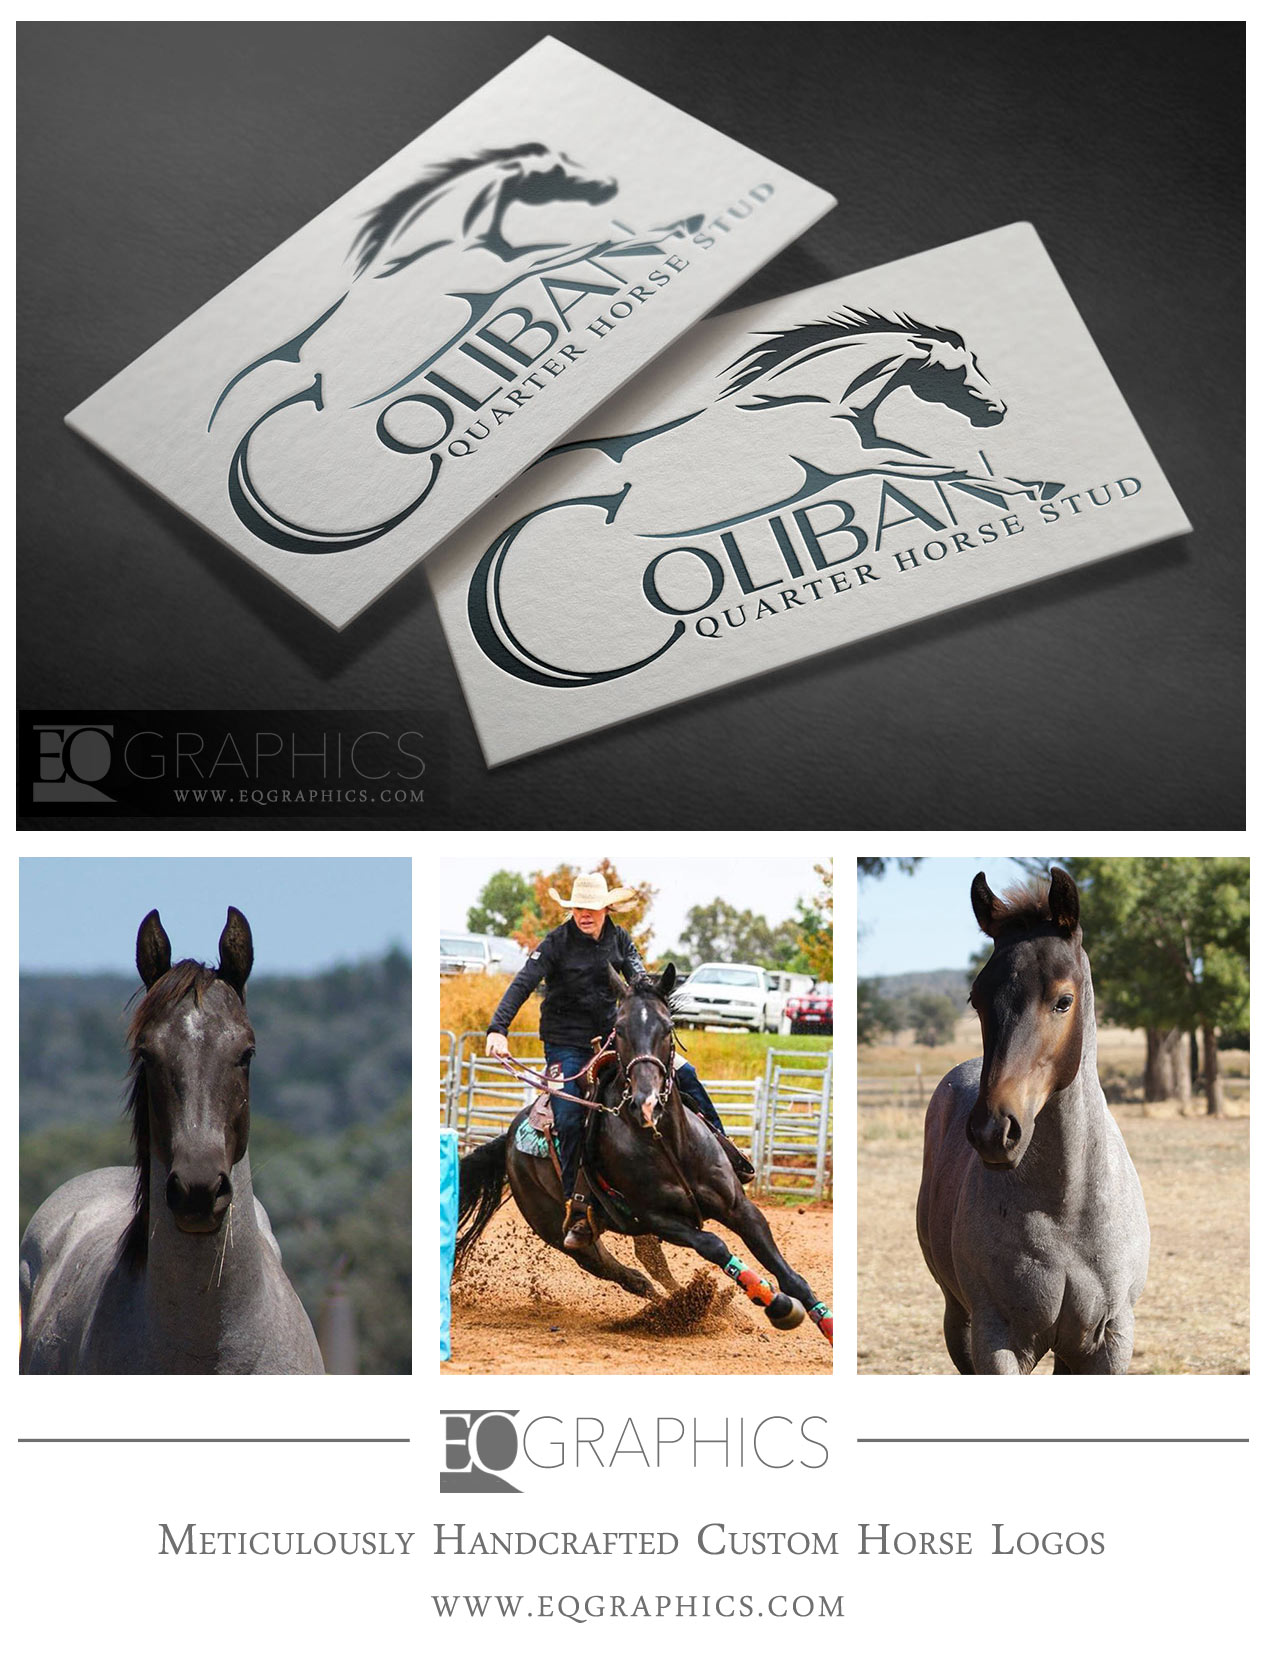 Coliban Stud Custom Quarter Horse Logo by EQ Graphics Equine Designer